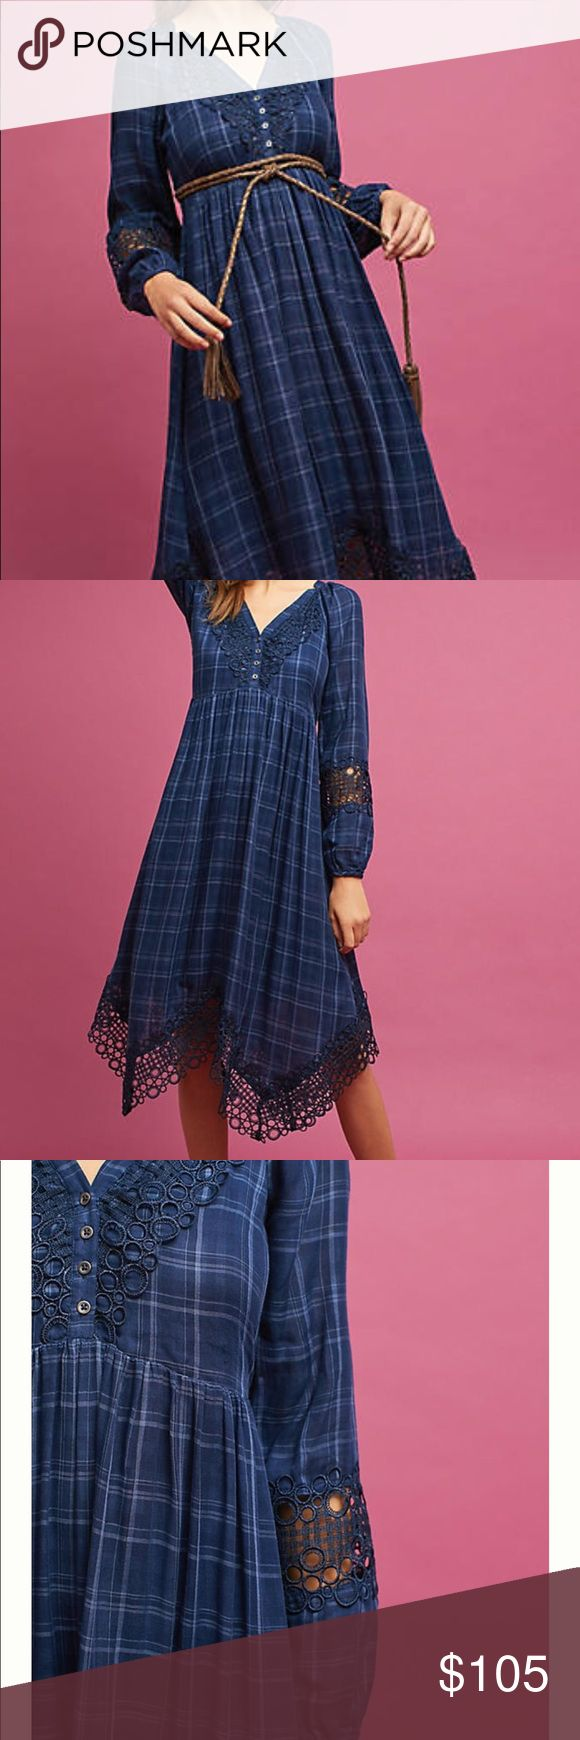 NWT anthropologie akemi kin dress Codie Plaid Handkerchief Dress Style No. 4130265415626 ; Color Code: 040  Akemi + Kin's Codie dress might arrive in a timeless plaid, but its cut truly departs from tradition. Anchor the flowing handkerchief hem with chunky leather ankle boots.  By Akemi + Kin Cotton V-neck Long sleeves Pullover styling Plaid print Handkerchief hem Lace trim Hand wash Belt not included Please note this style runs large - we suggest sizing down Imported Anthropologie Dresses